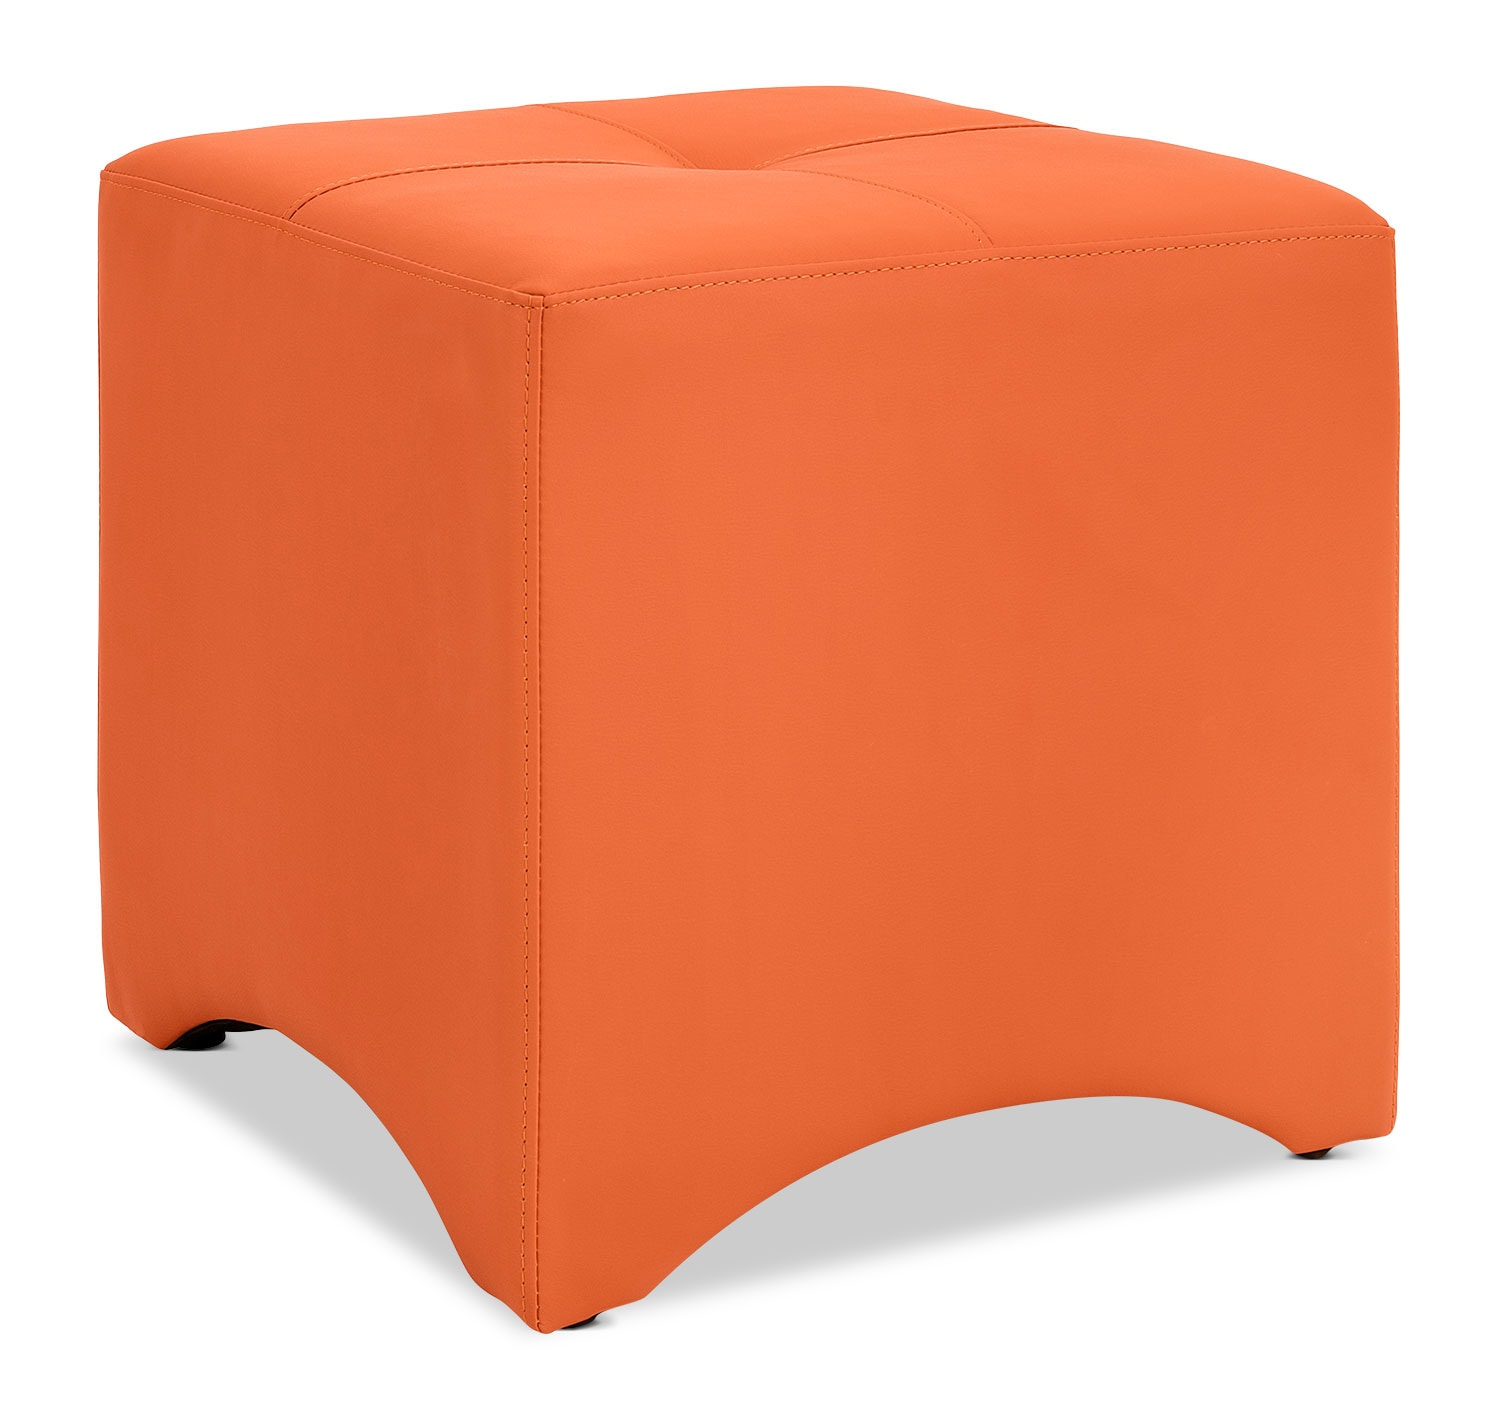 Briel Ottoman – Orange